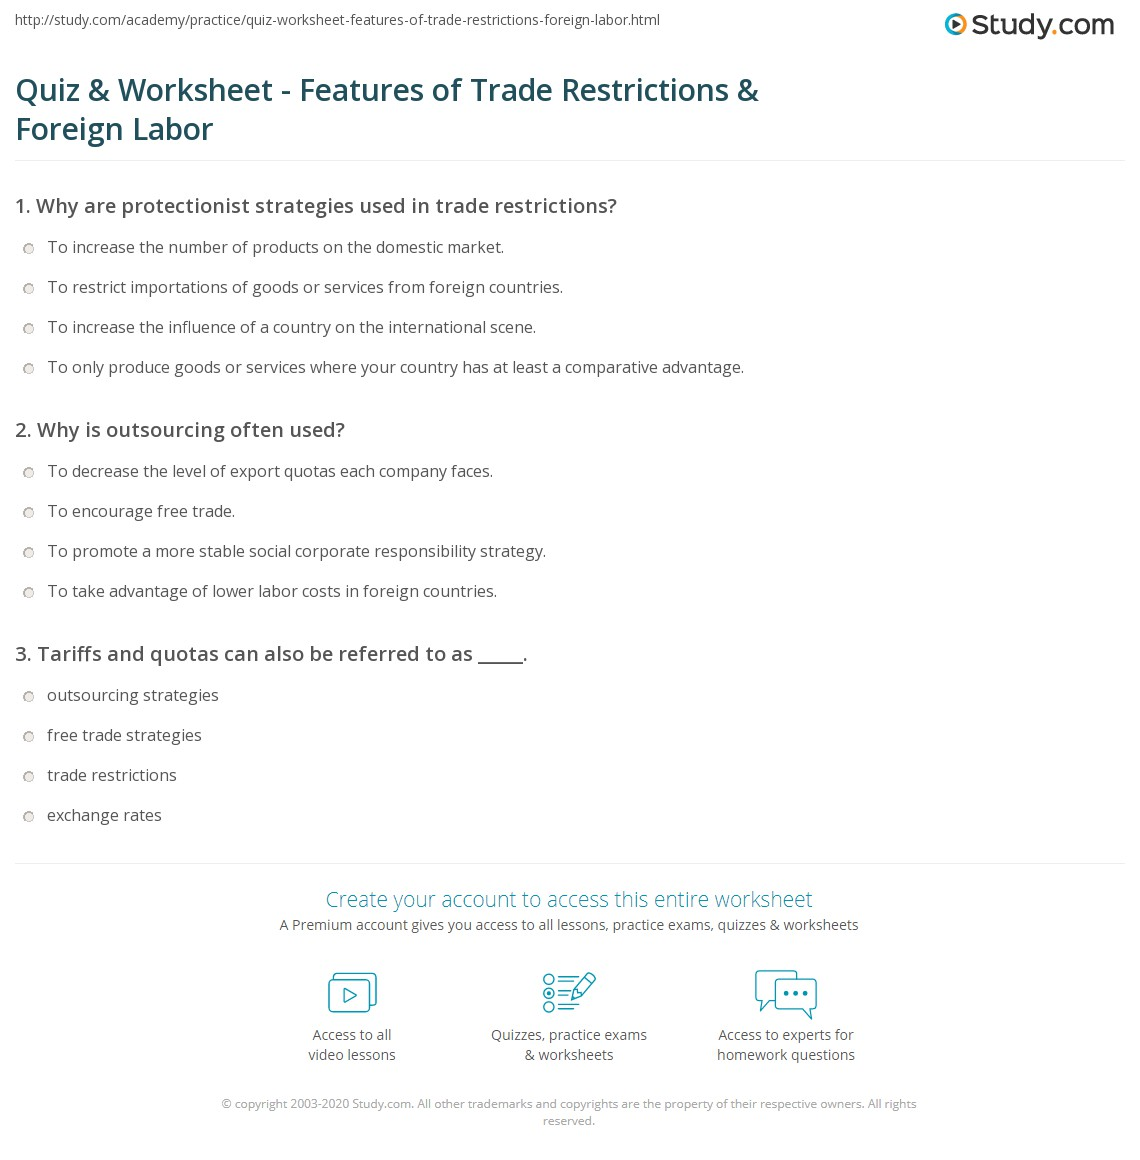 quiz worksheet features of trade restrictions foreign labor. Black Bedroom Furniture Sets. Home Design Ideas